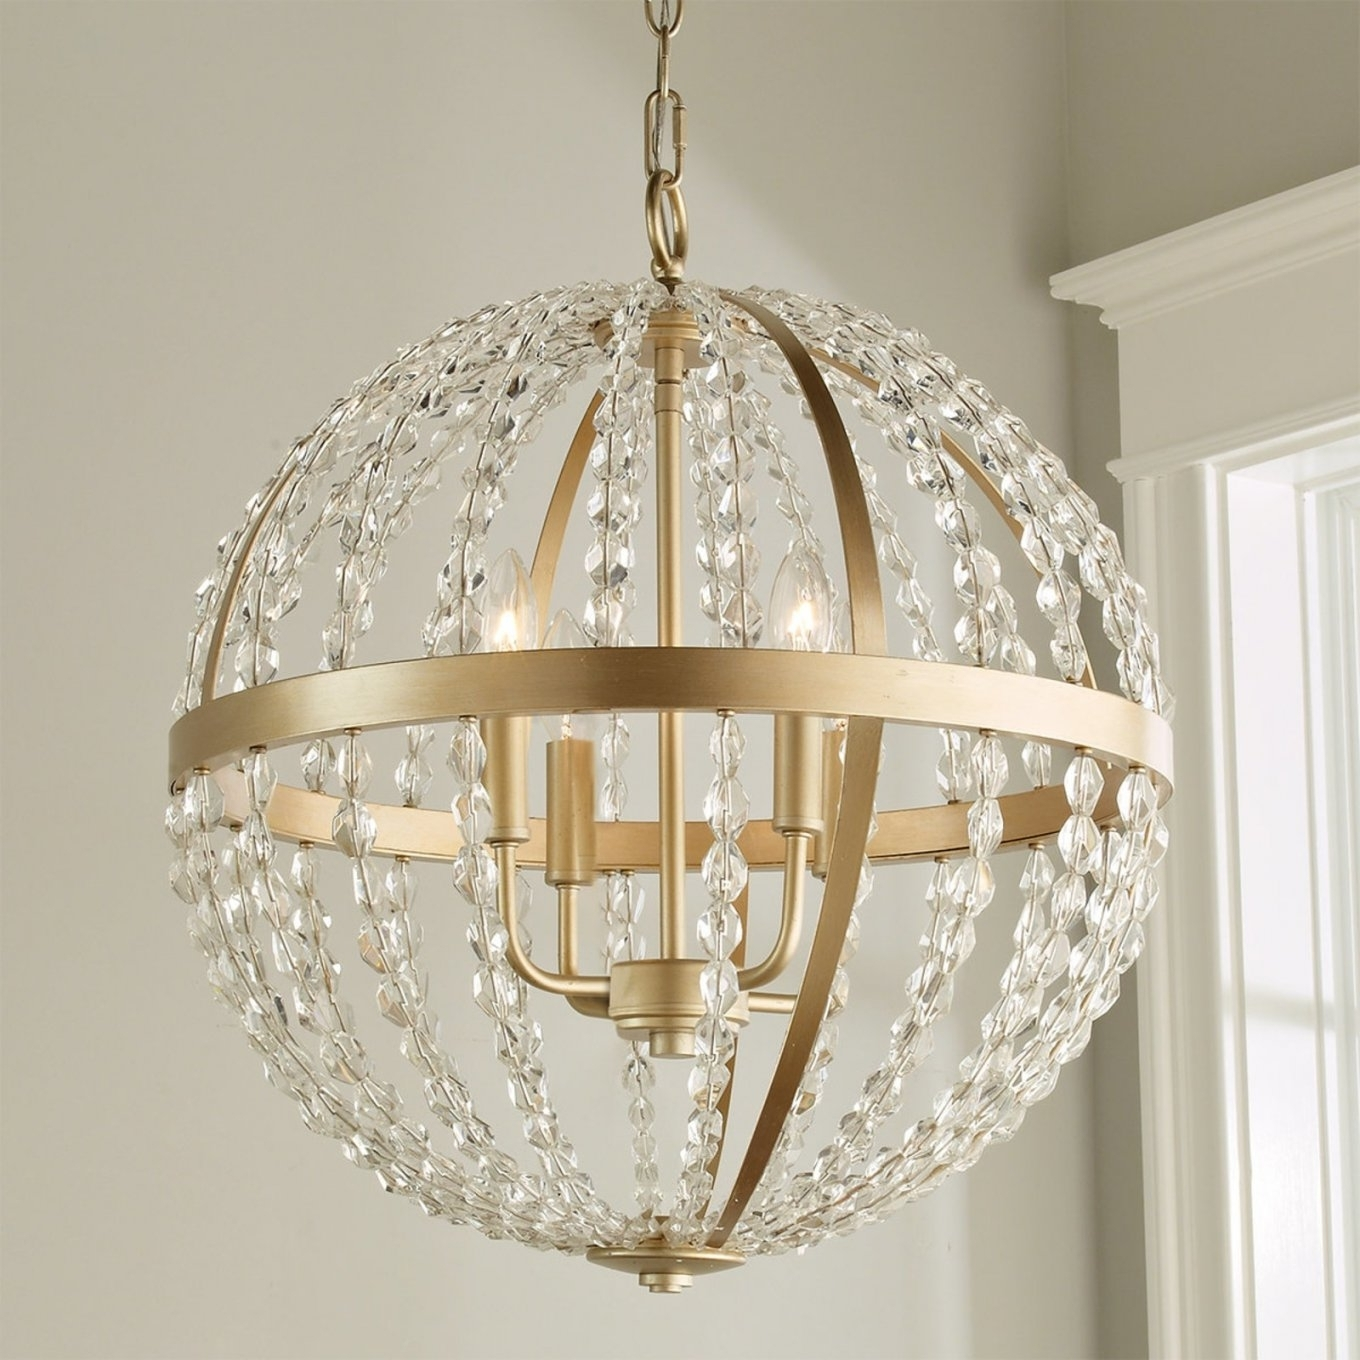 2019 Rona Chandelier Light Fixtures – Chandelier Designs With Regard To Outdoor Ceiling Lights At Rona (Gallery 17 of 20)